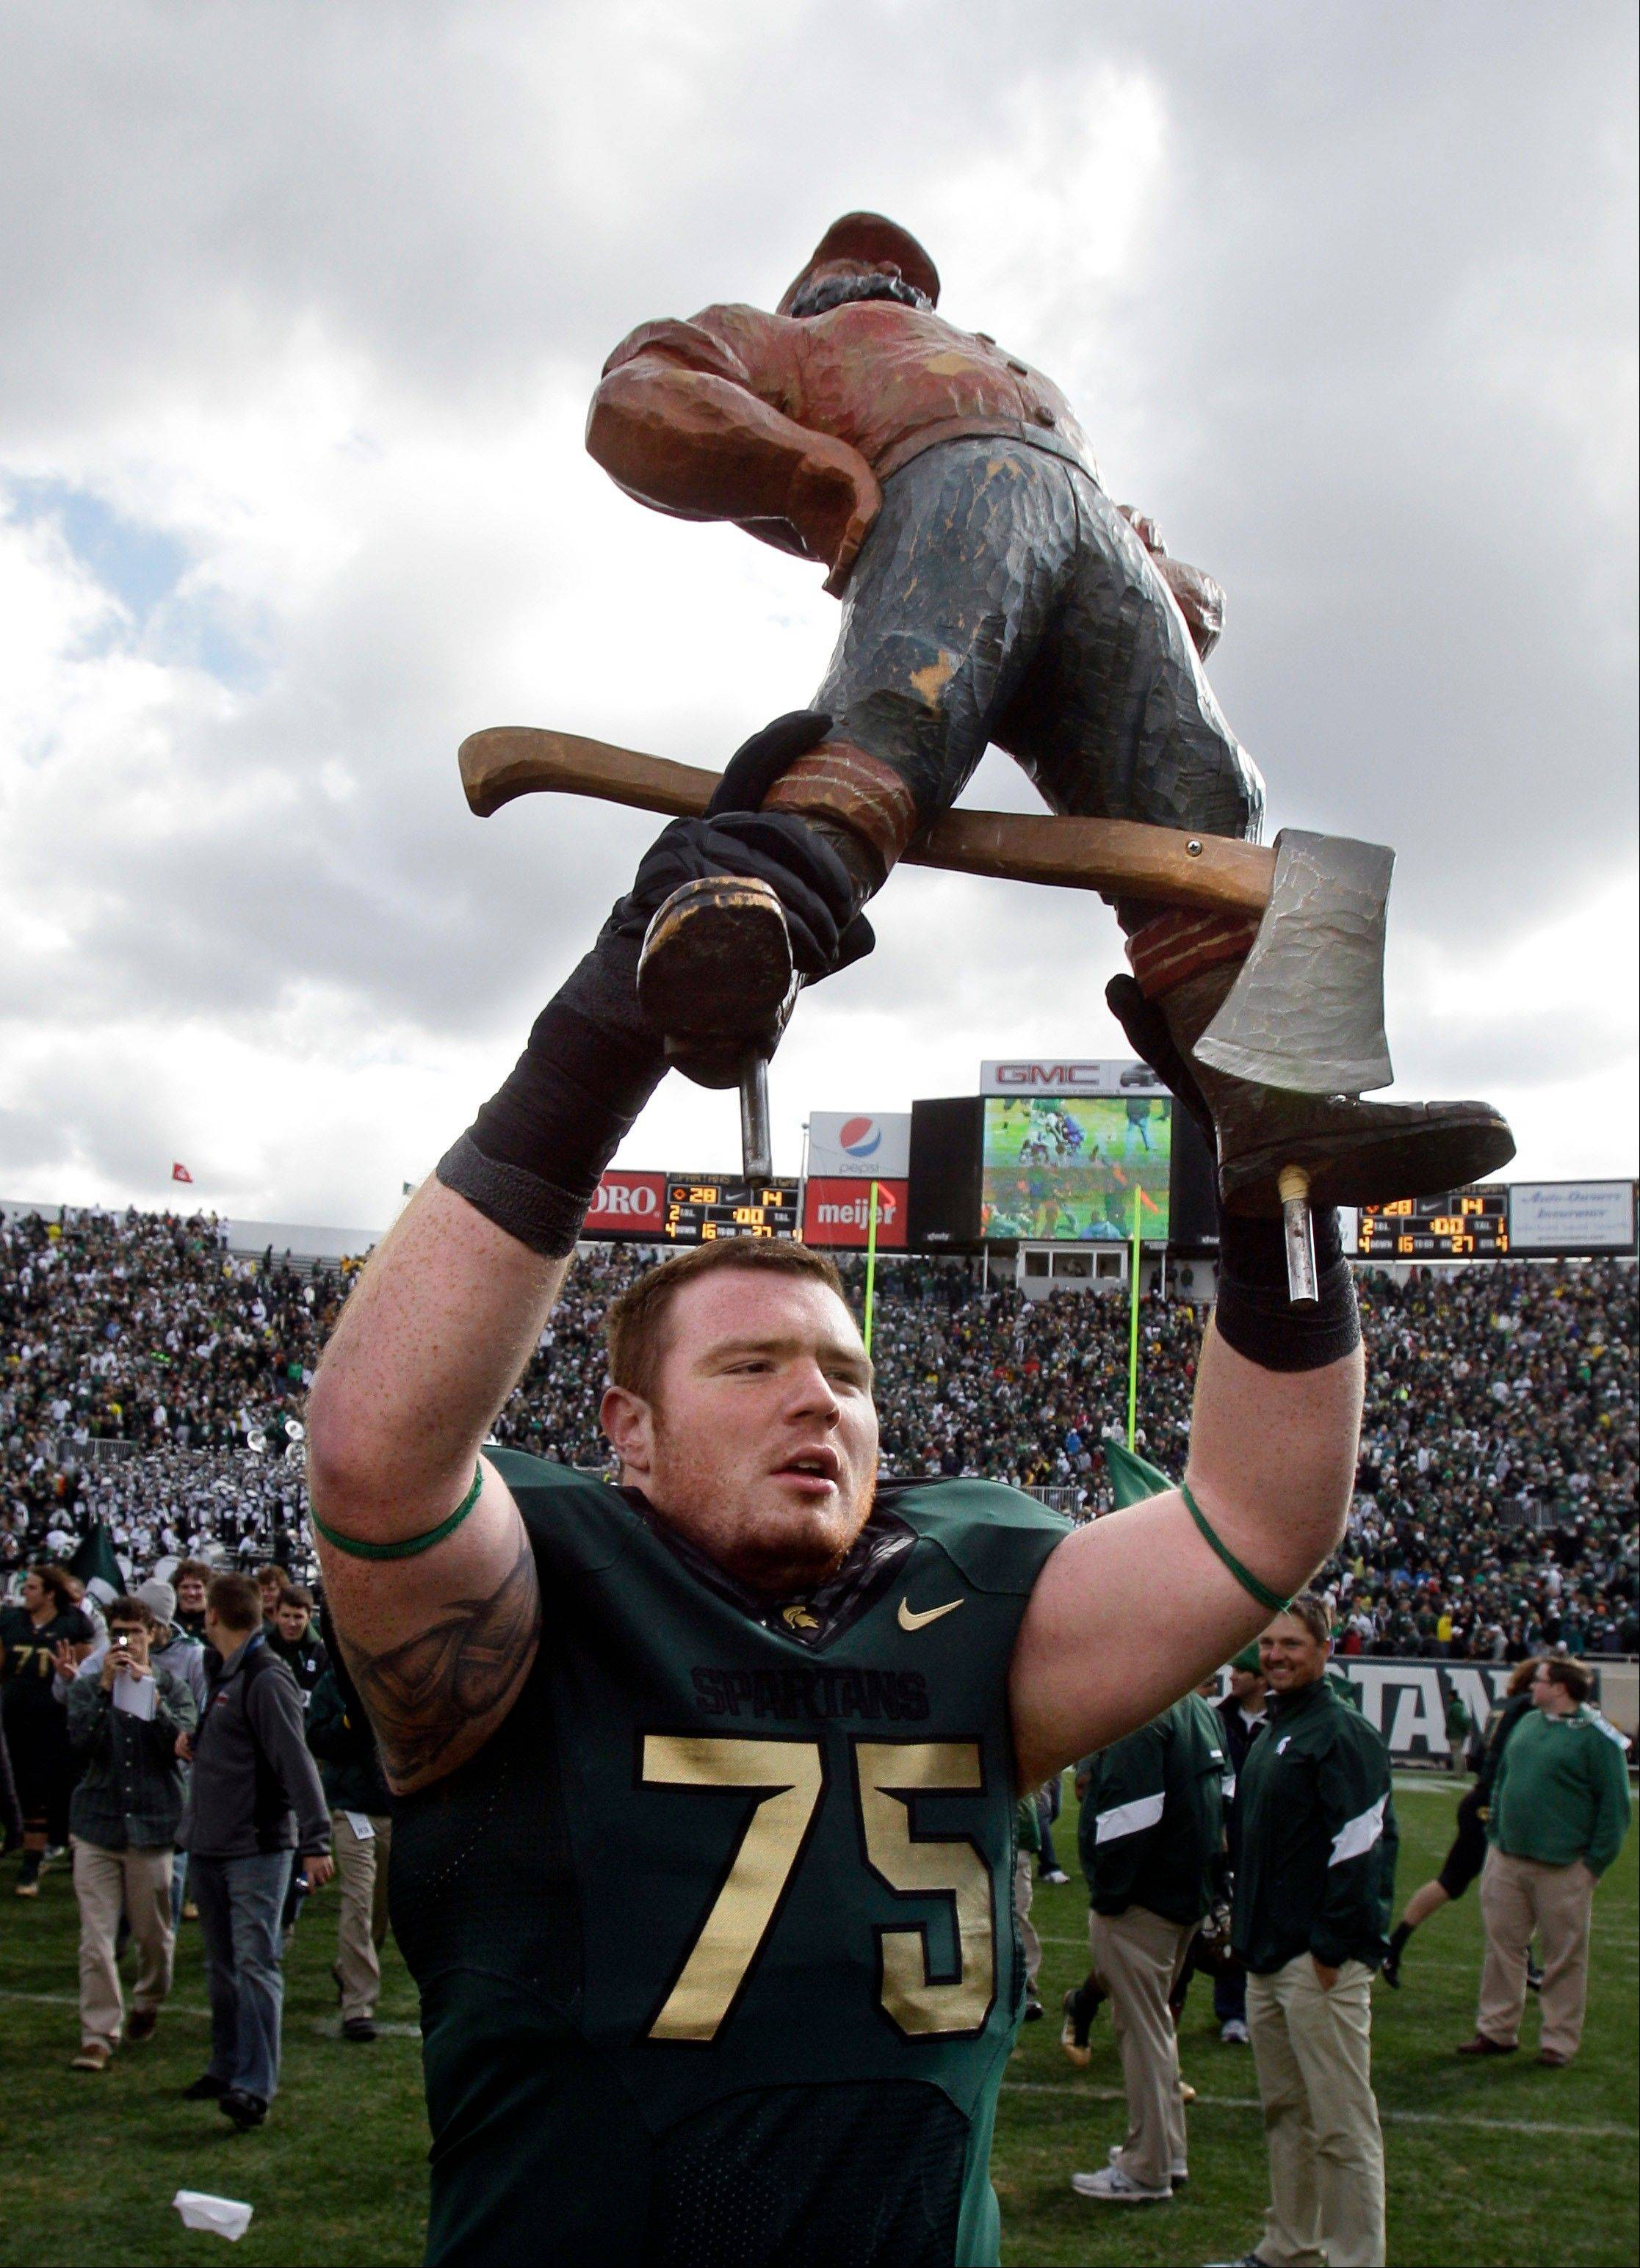 Michigan State offensive tackle Jared McGaha holds the Paul Bunyan Trophy after the Spartans defeated Michigan 28-14 last season in East Lansing, Mich.